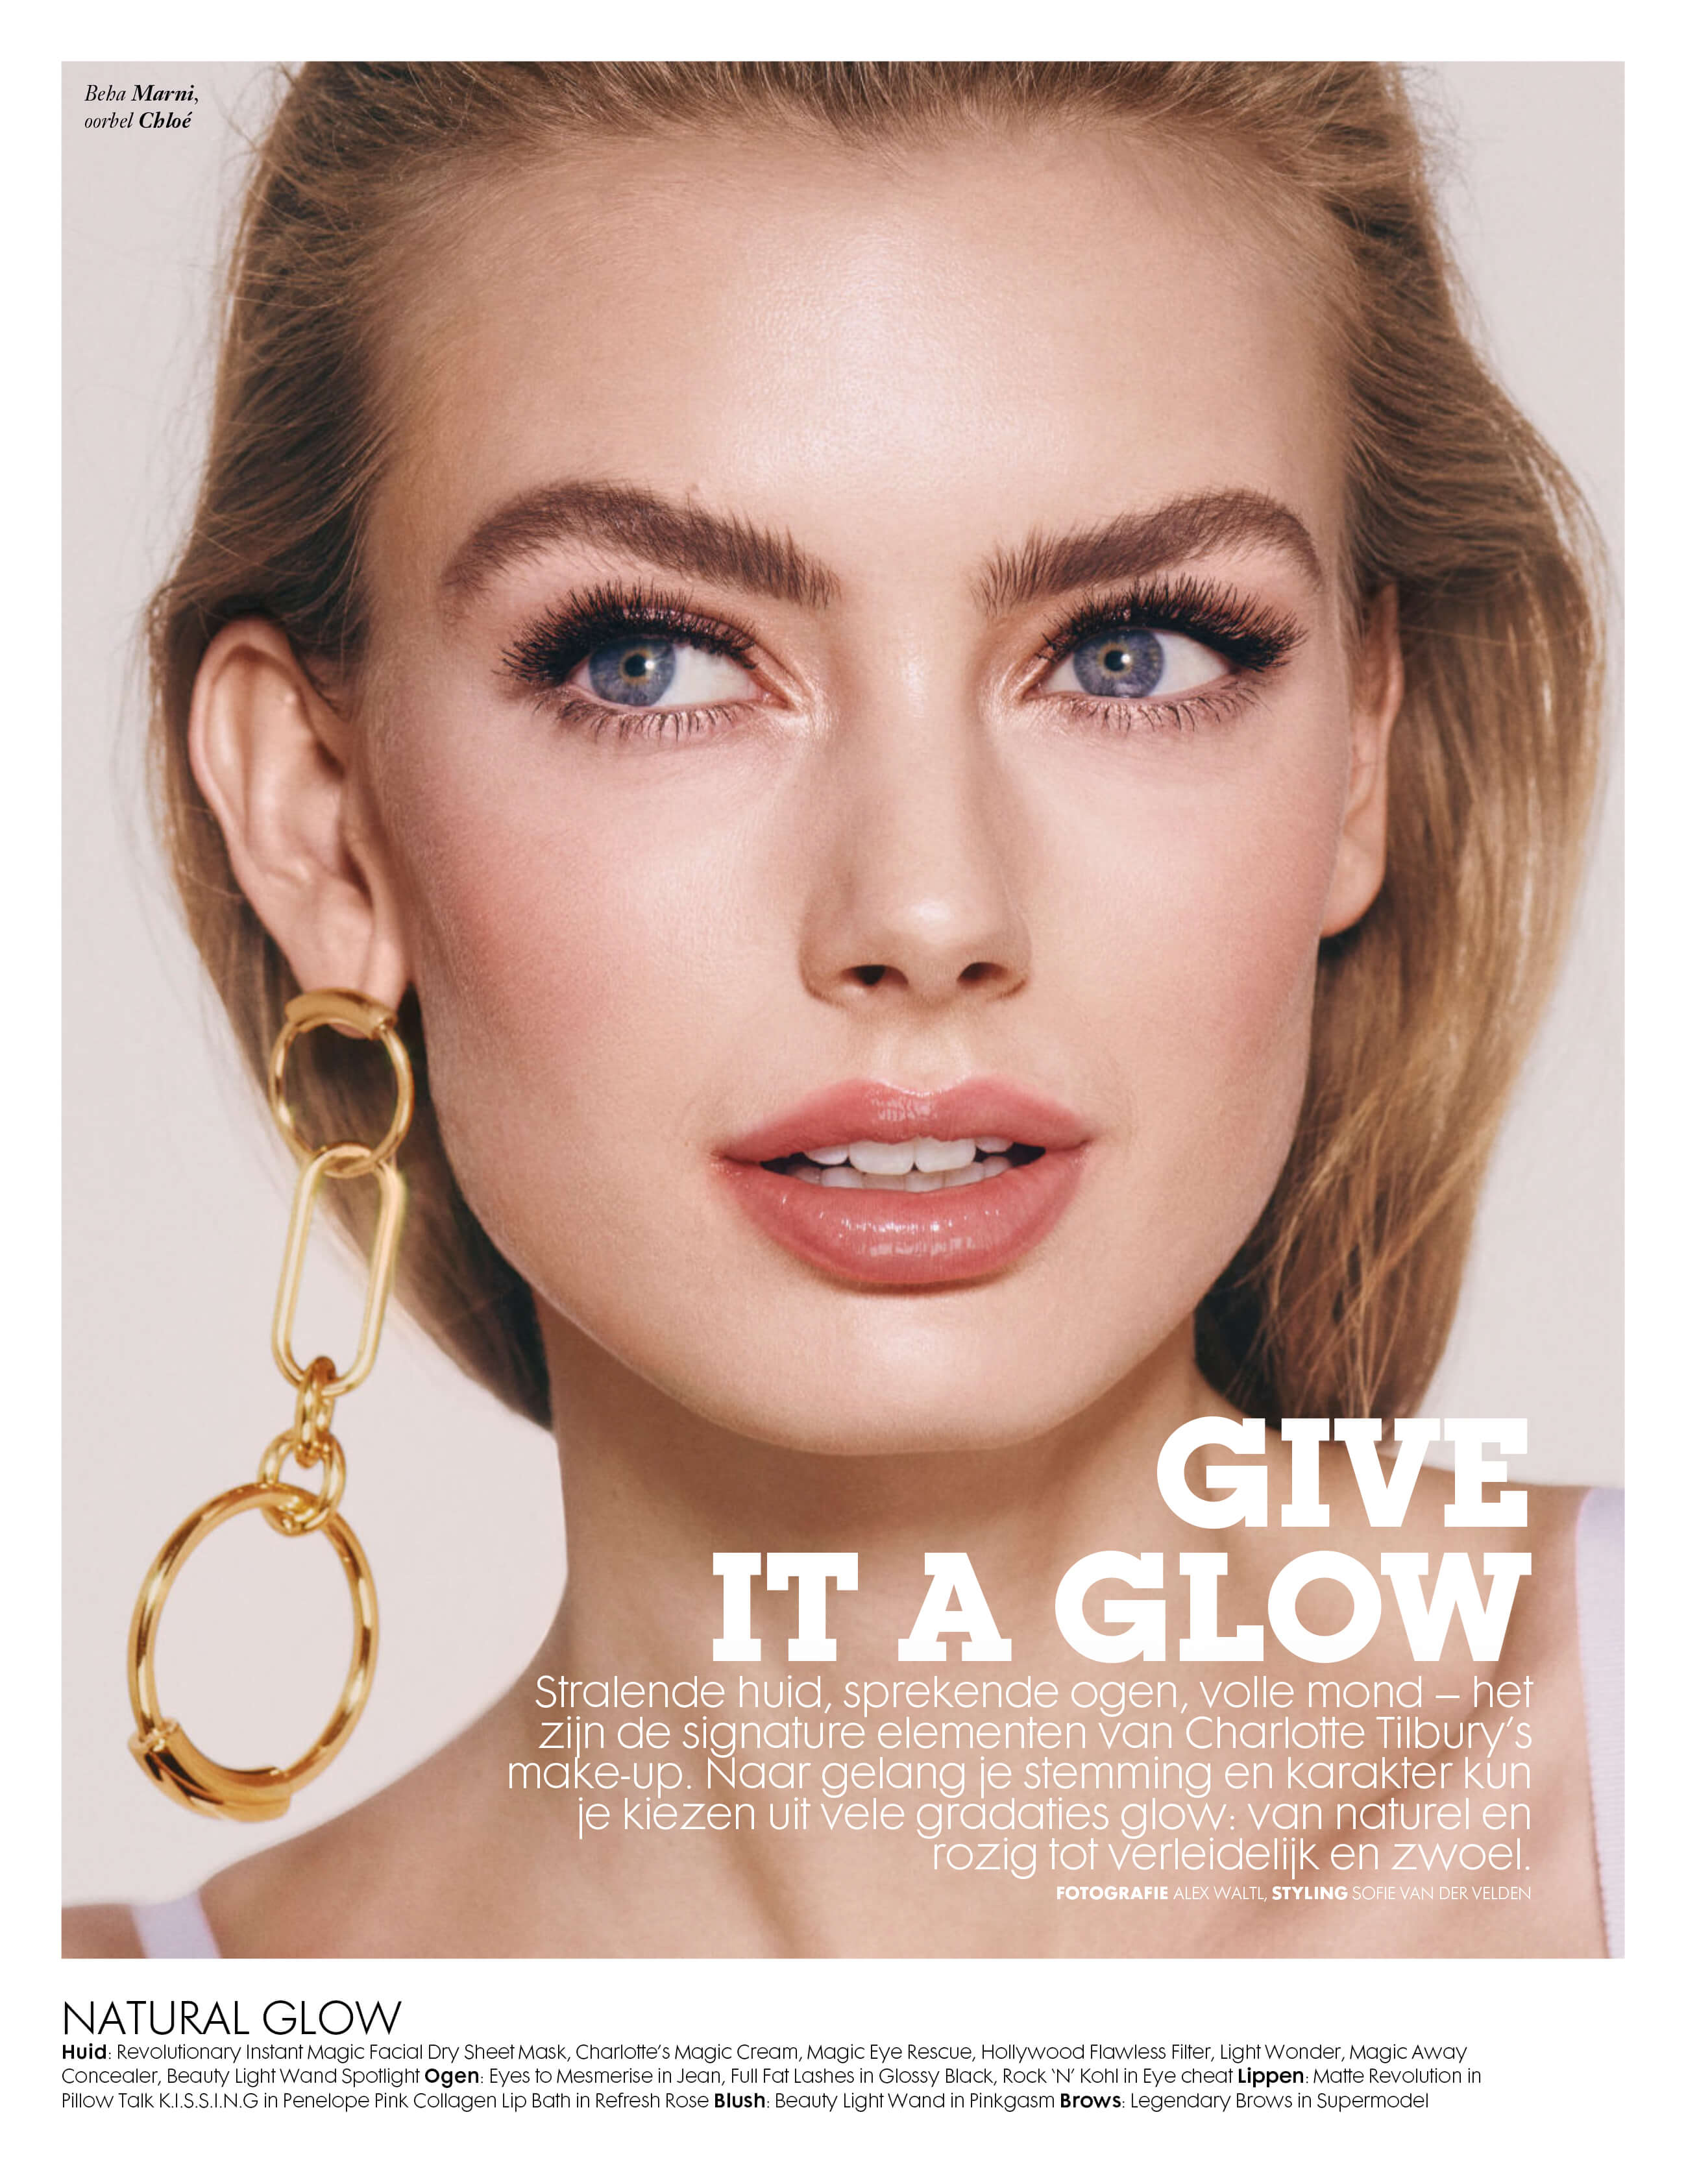 Page of Vogue NL showing Charlotte Tilbury by Alex Waltl